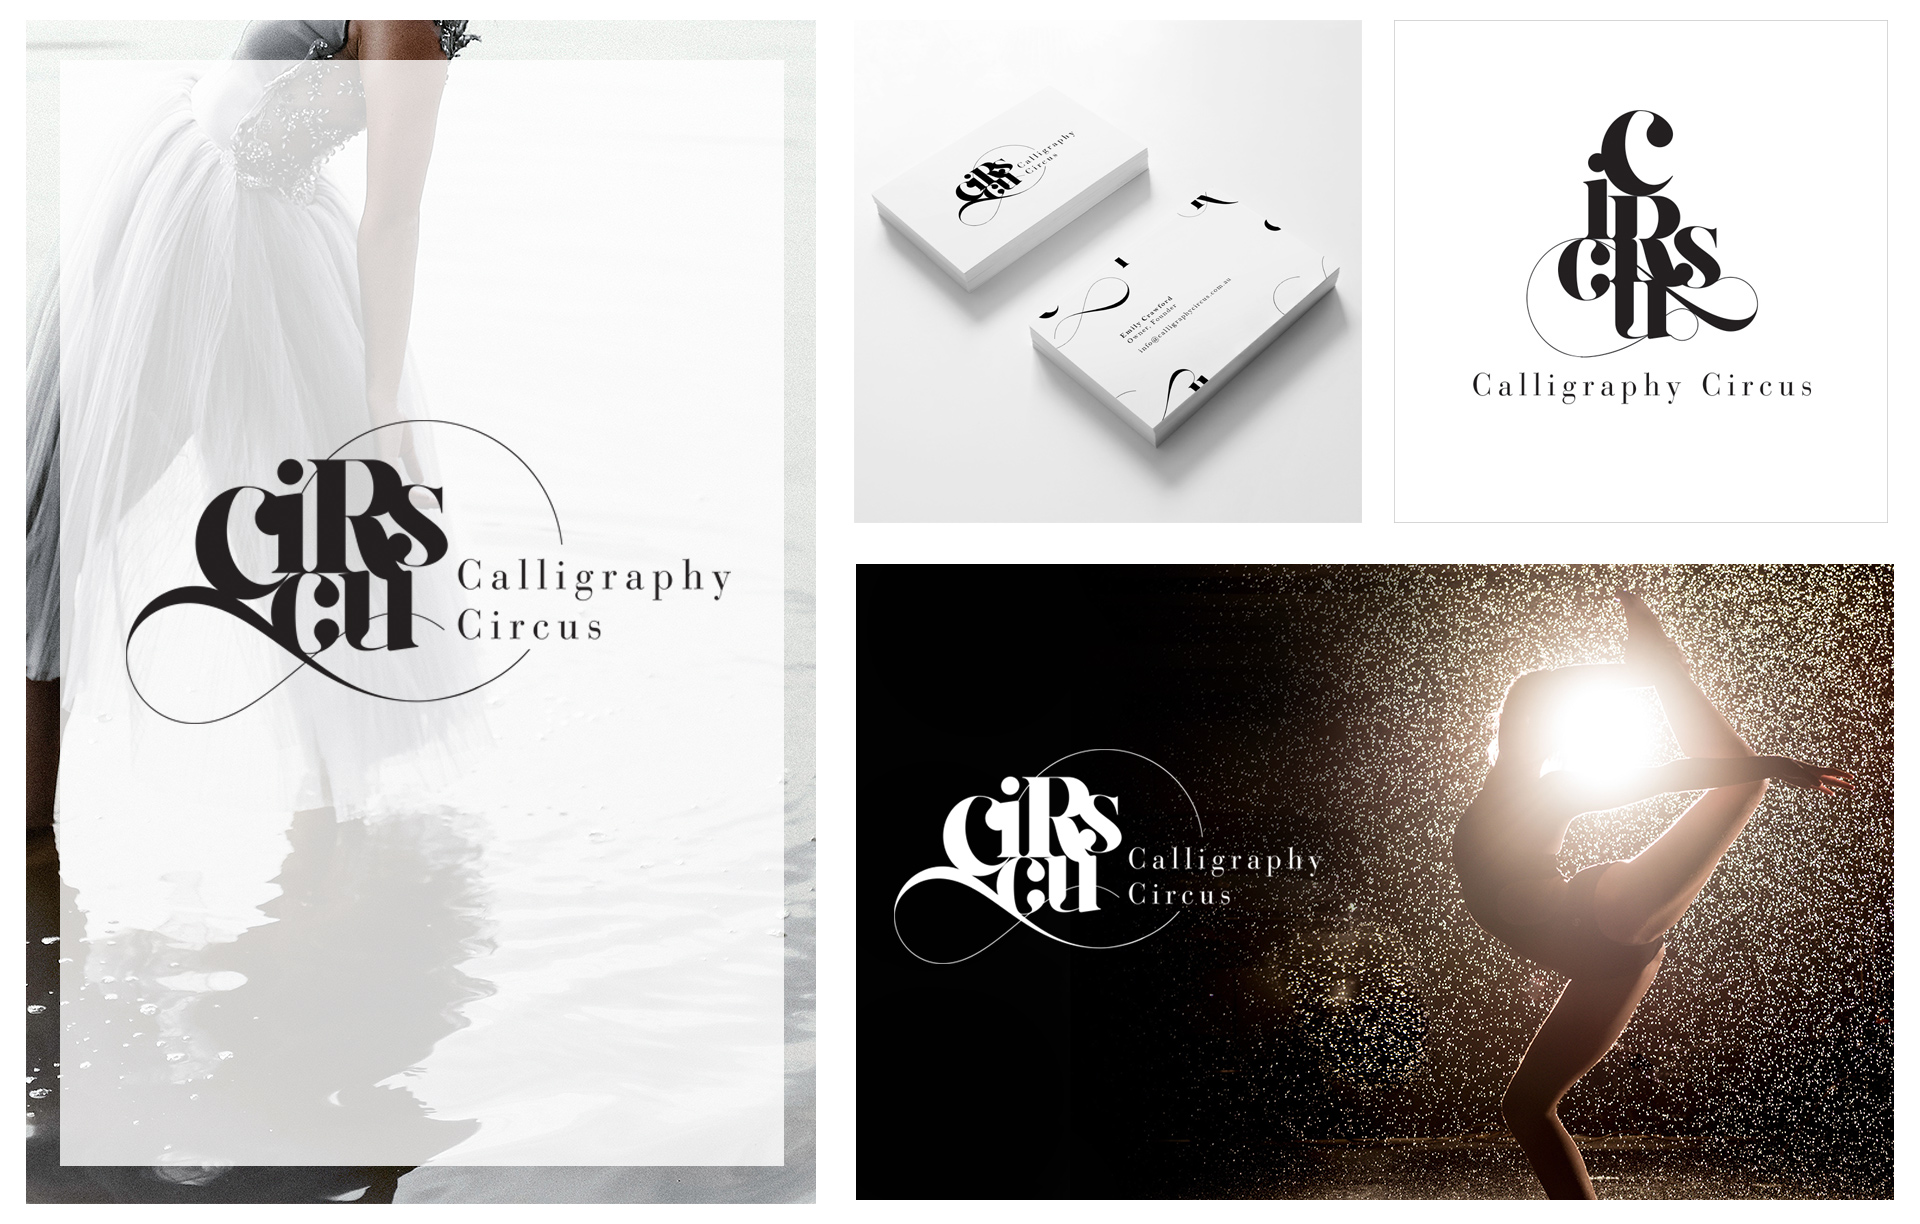 Graphic-Design-Examples_Calligraphycircus.jpg